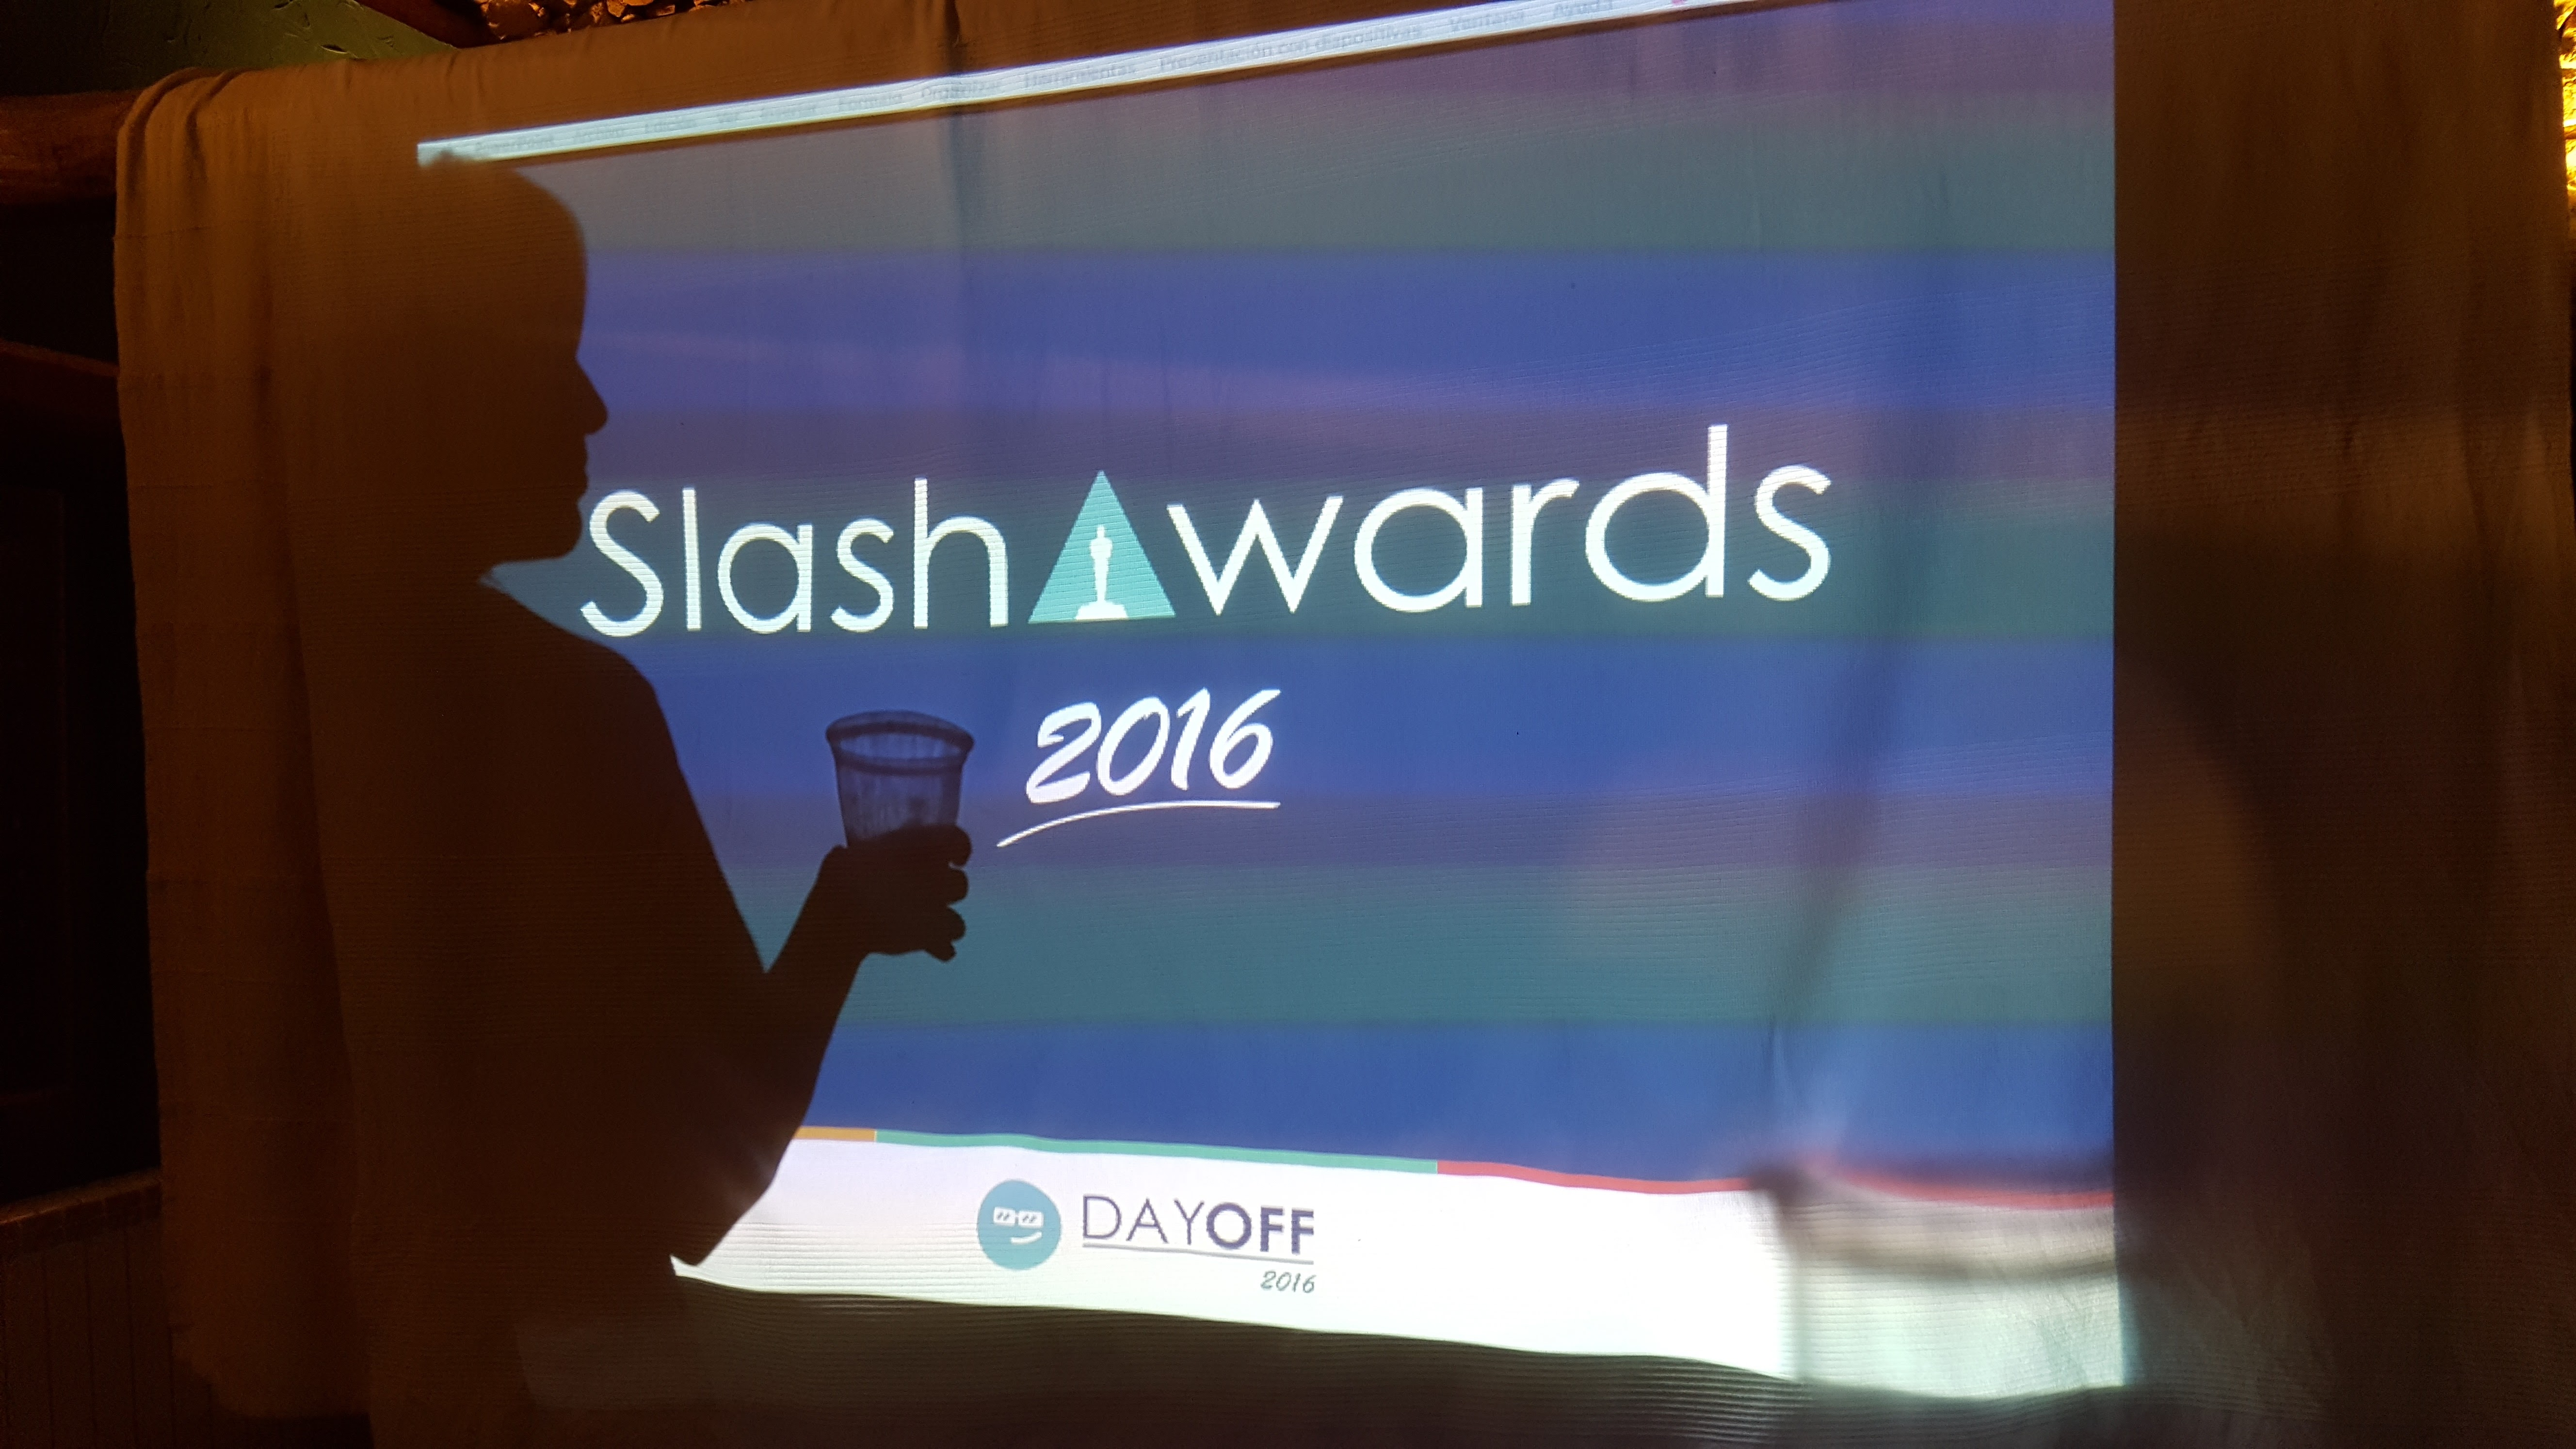 slashawards day off 2016